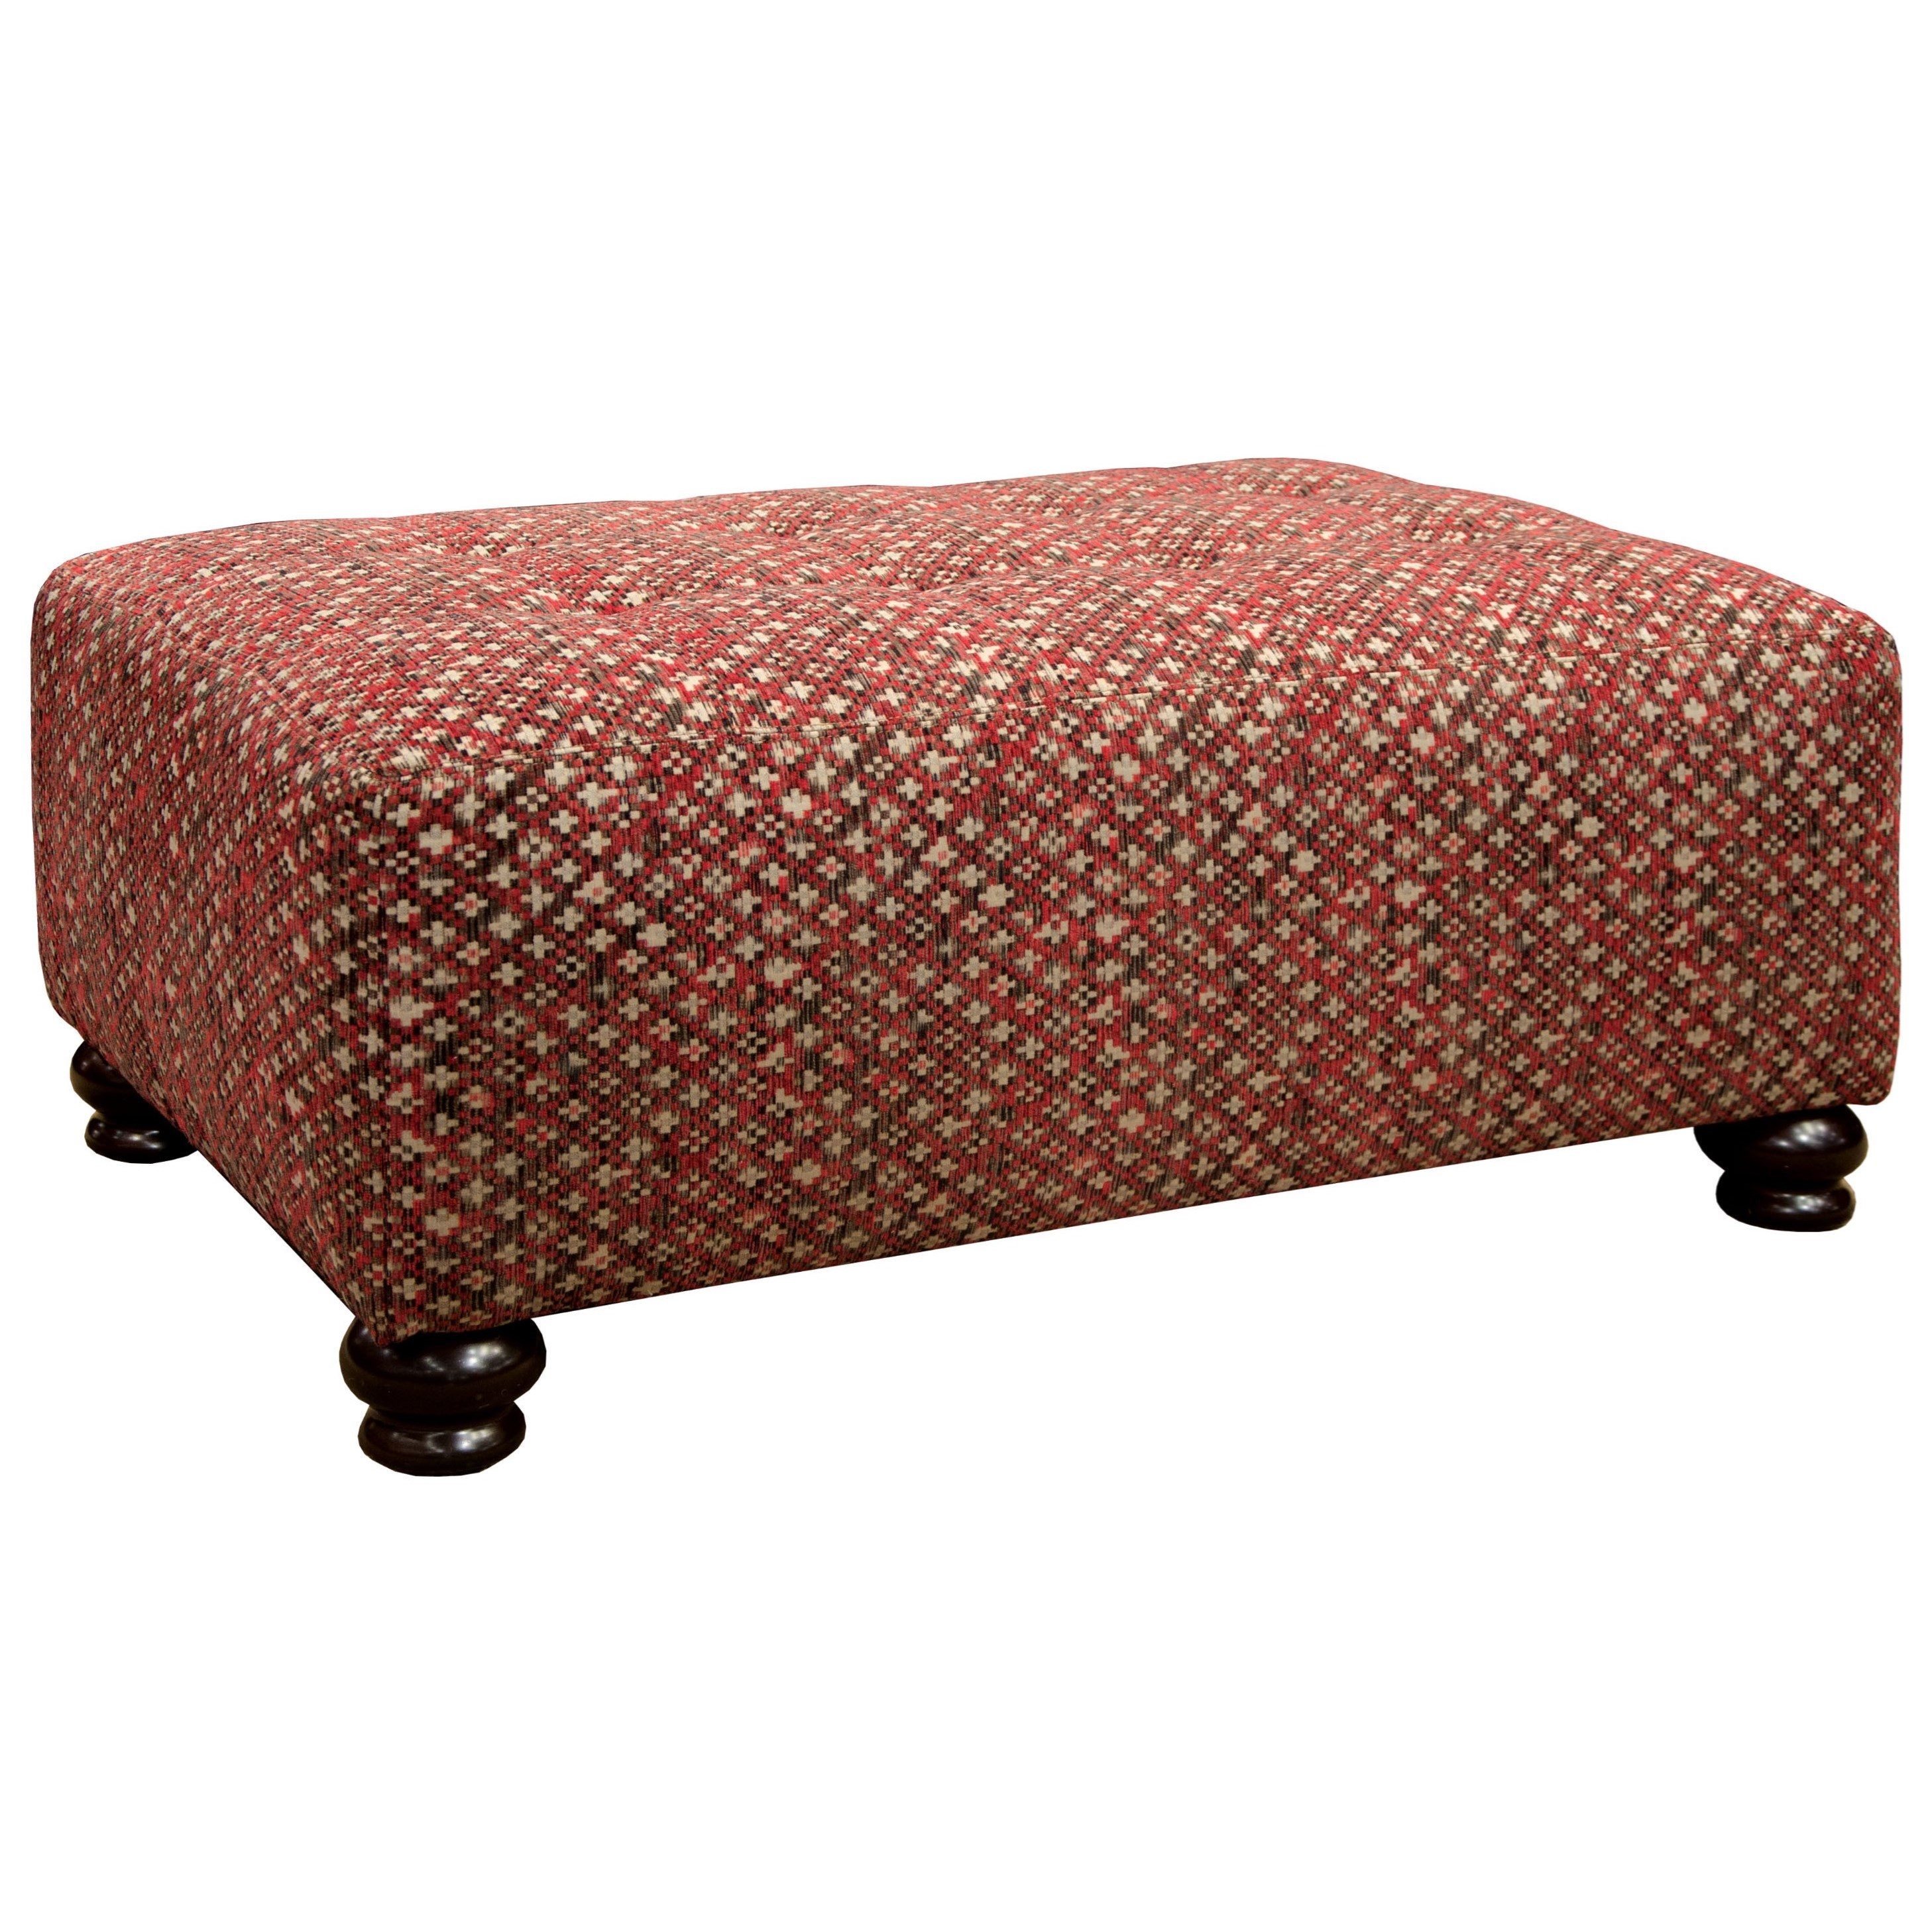 Jackson Furniture Southport Cocktail Ottoman - Item Number: 436710-Red Geometric